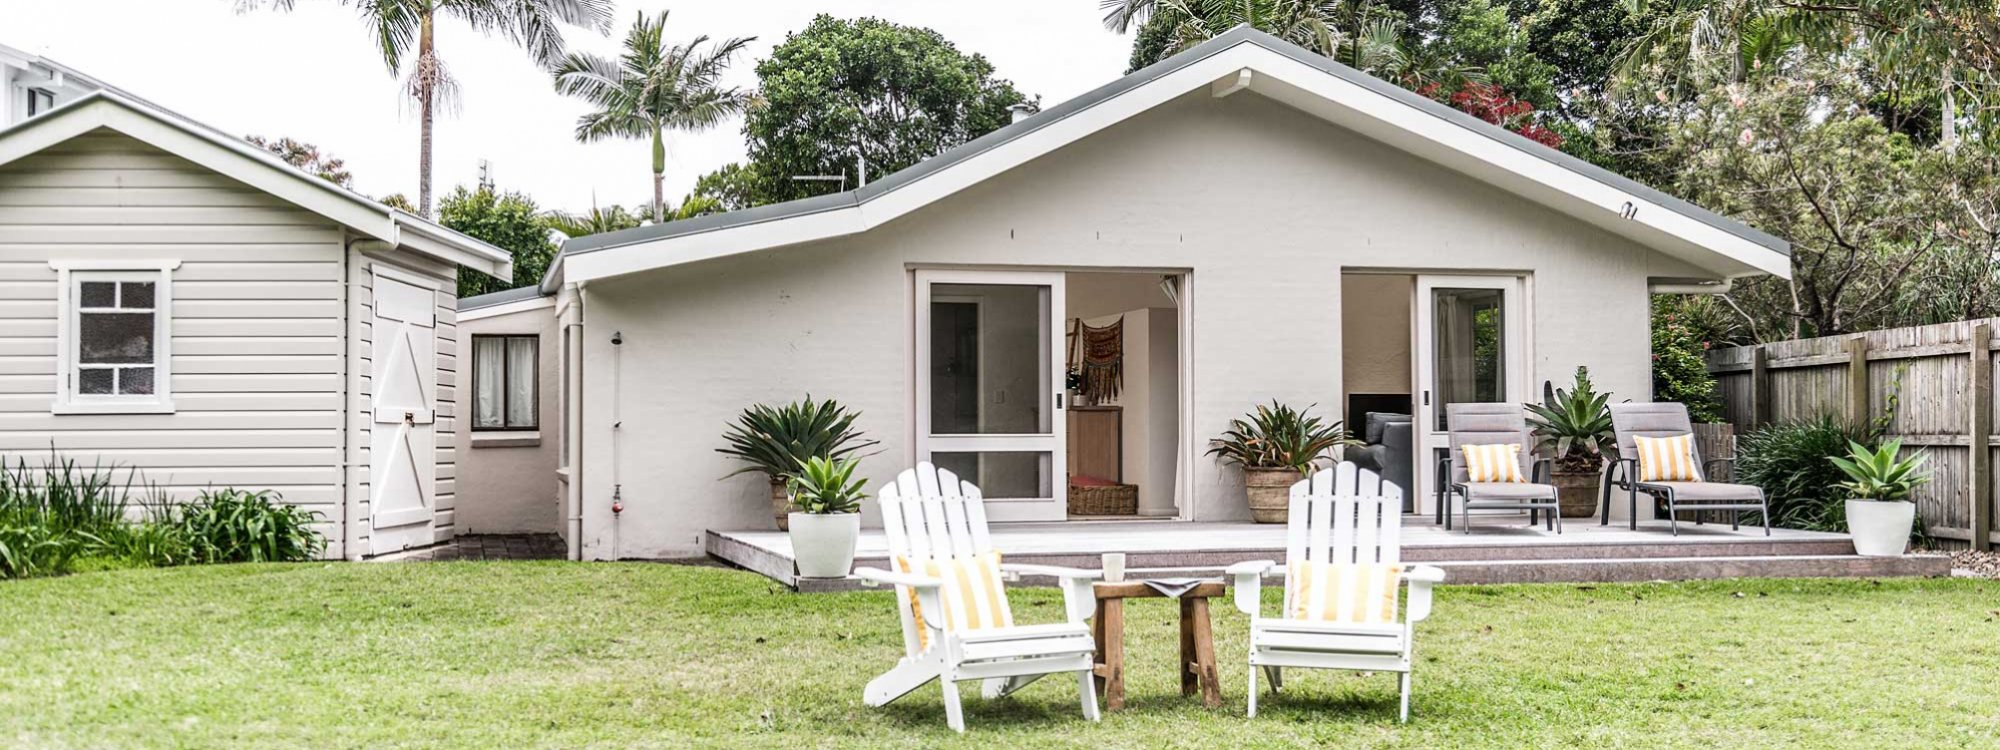 Beachwood - Byron Bay - Backyard b